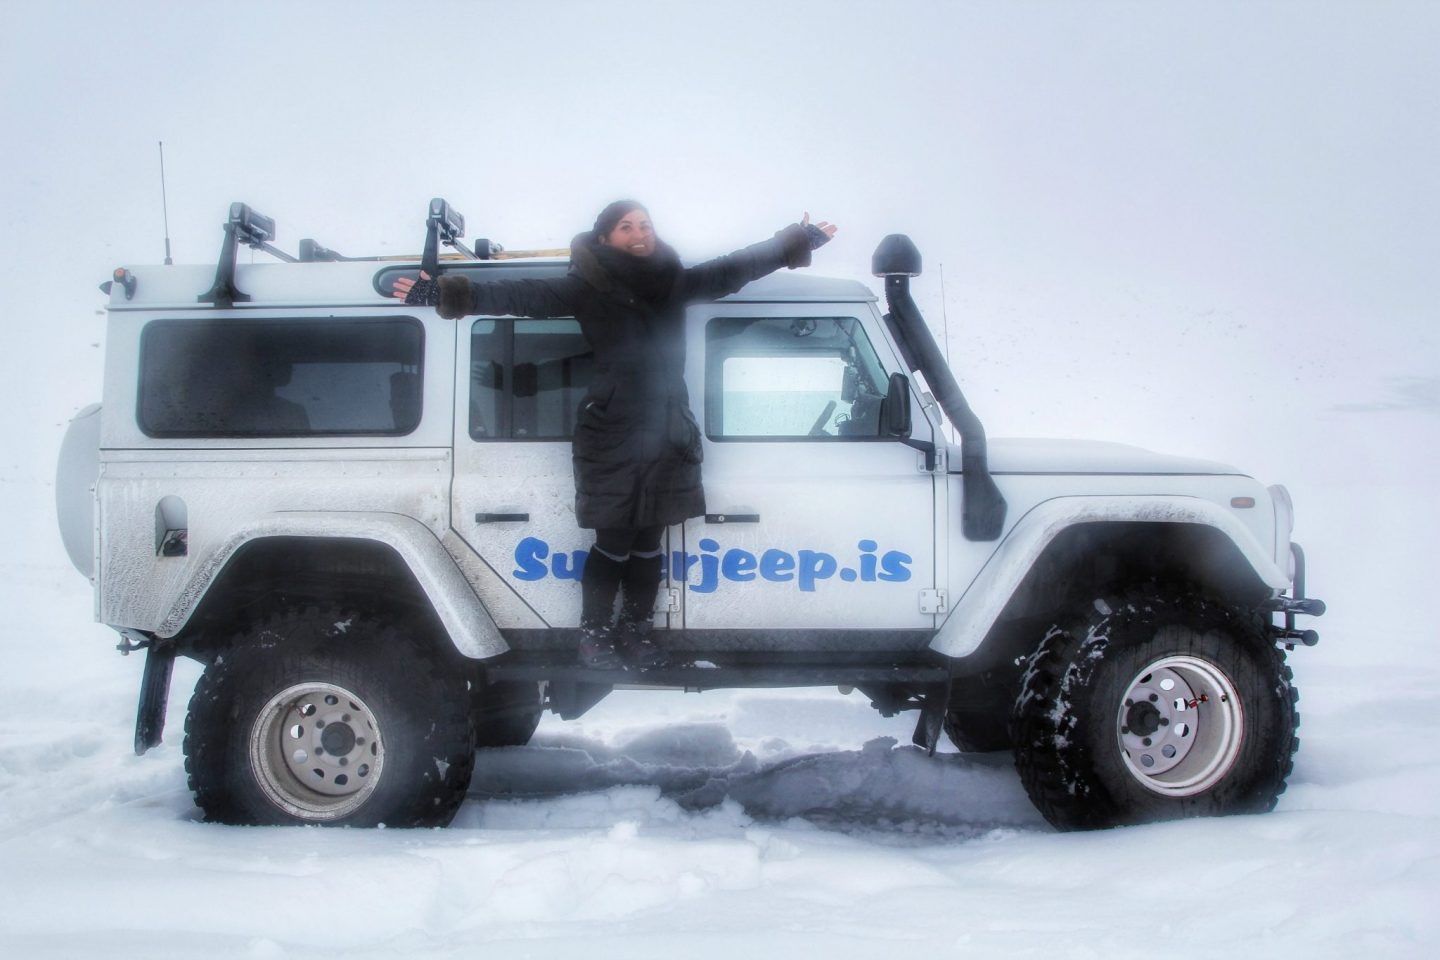 Superjeep – Private Guided Tour of Iceland